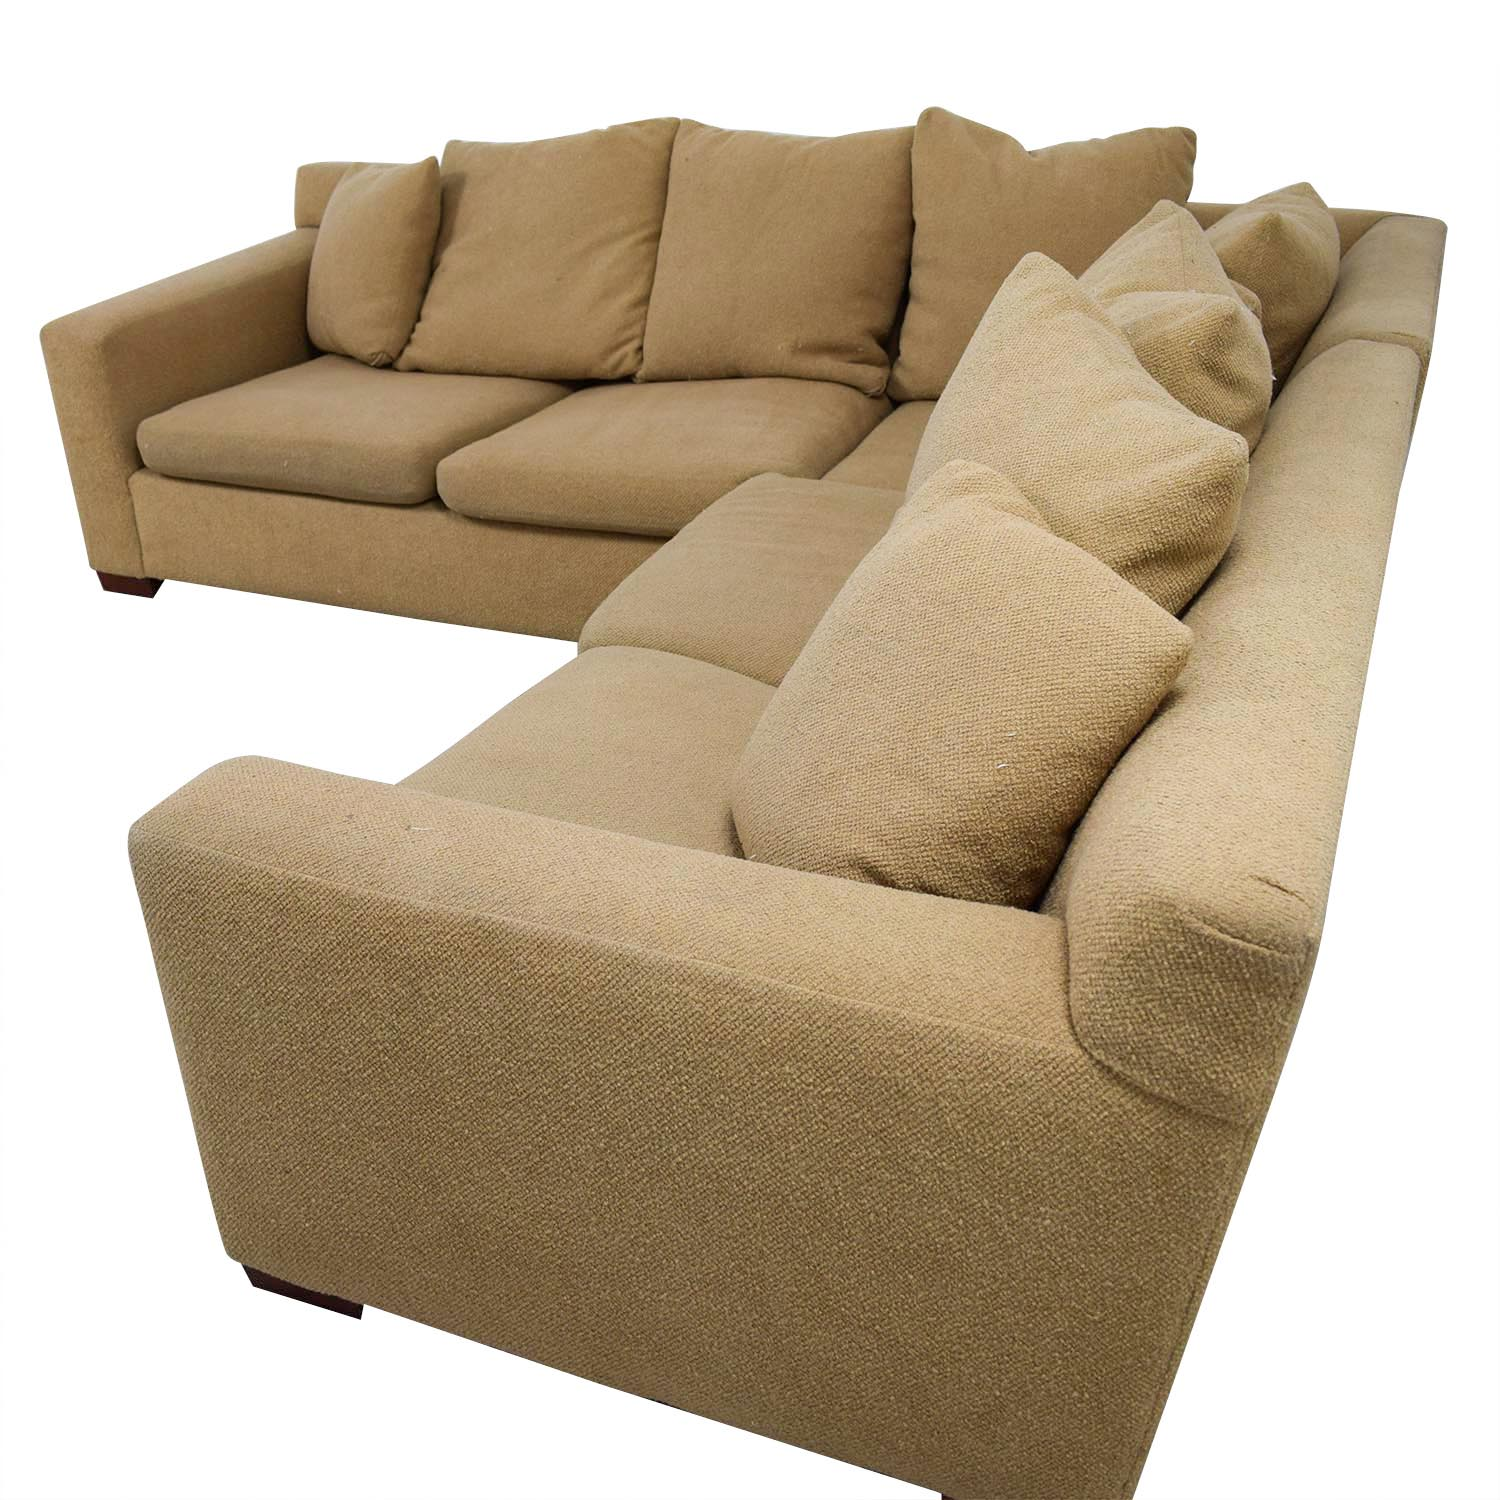 89 Off Ralph Lauren Home Ralph Lauren Down Filled Tan Sectional